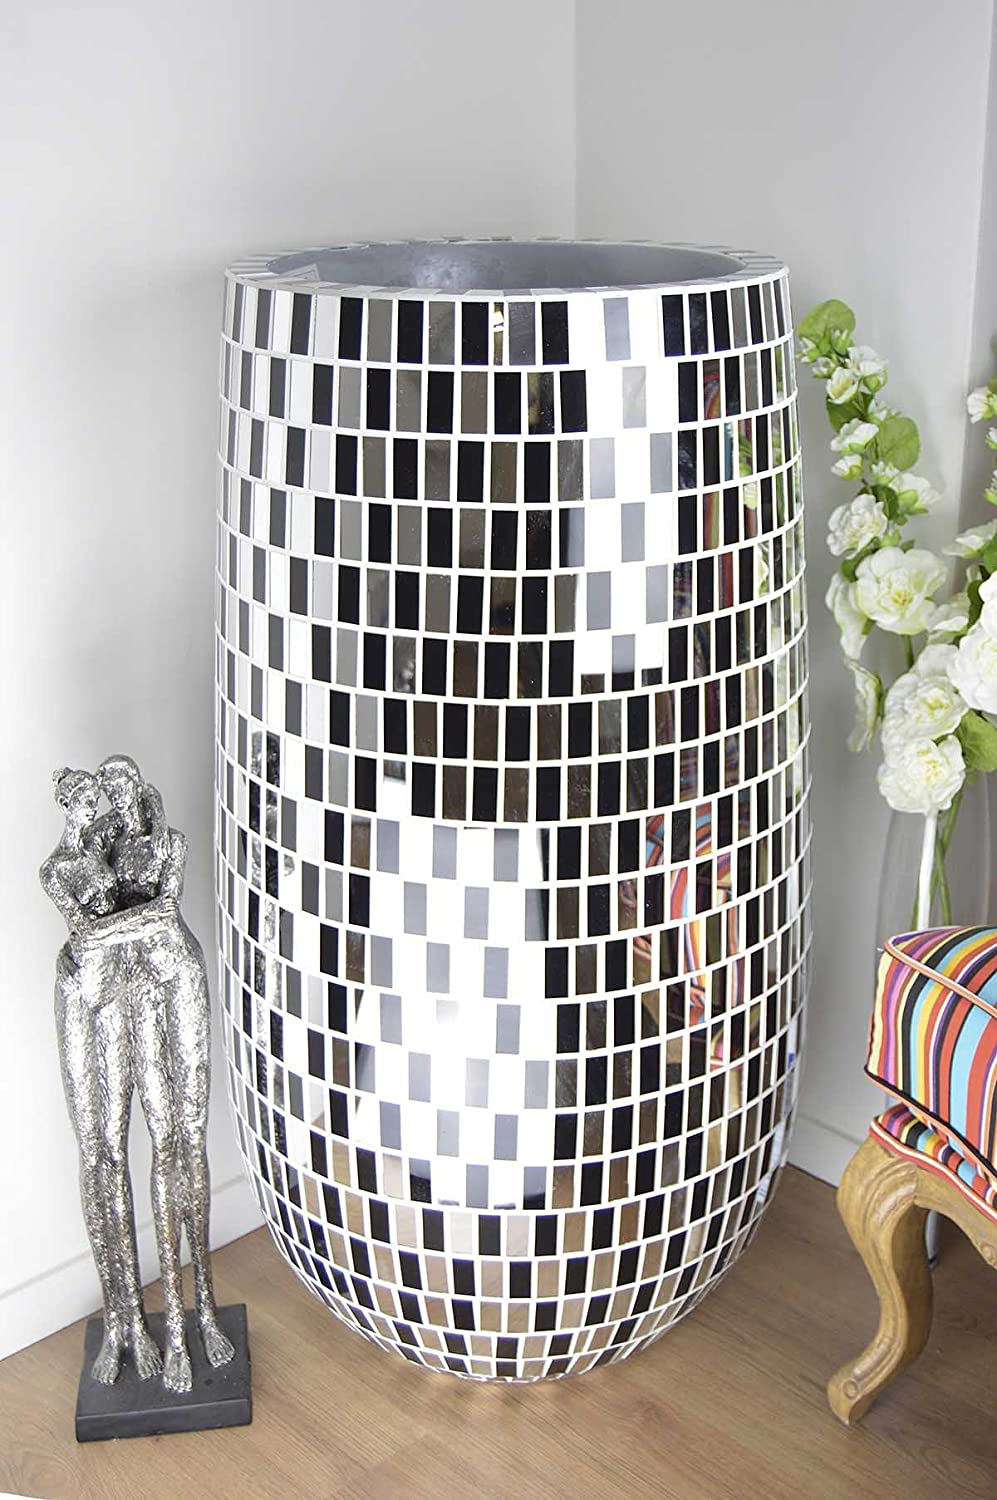 Very modern design extra large black and mirror mosaic vaseflower very modern design extra large black and mirror mosaic vaseflower pot 101cm x 50cm x 50cm amazon kitchen home reviewsmspy